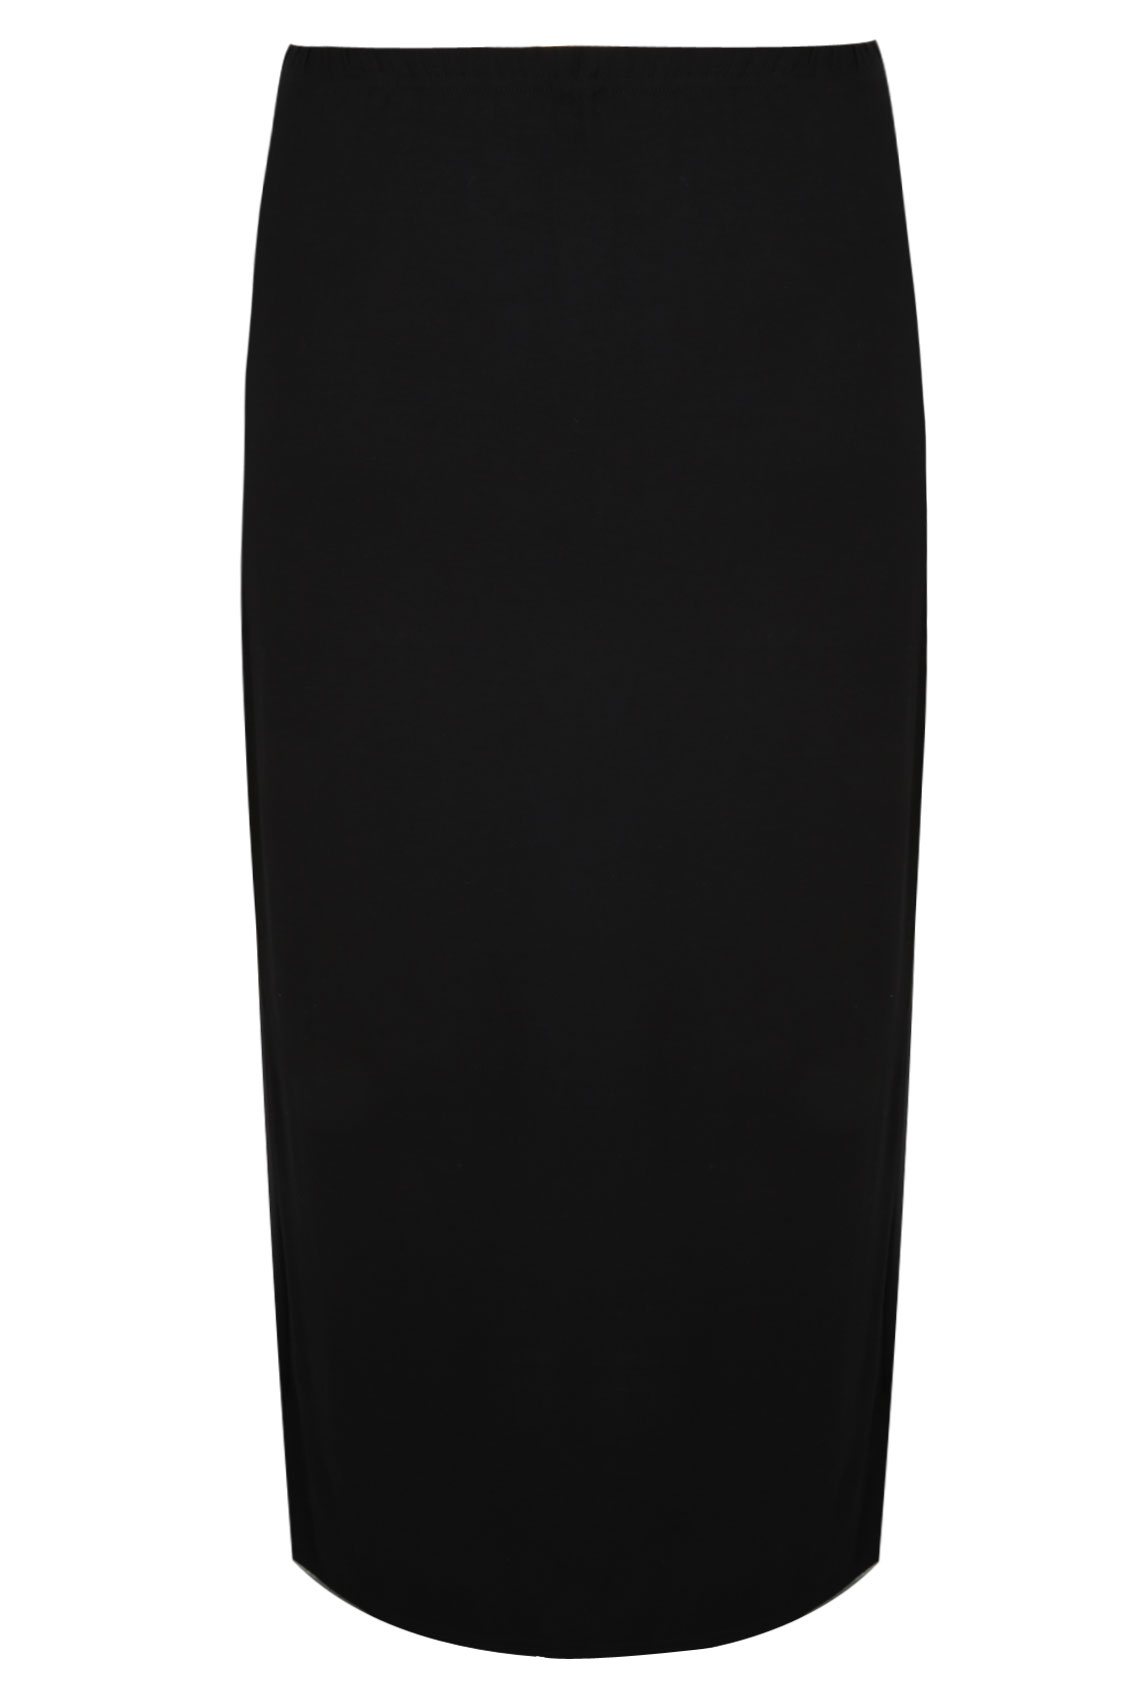 Rooms: BUMP IT UP MATERNITY Black Tube Maxi Skirt With Comfort